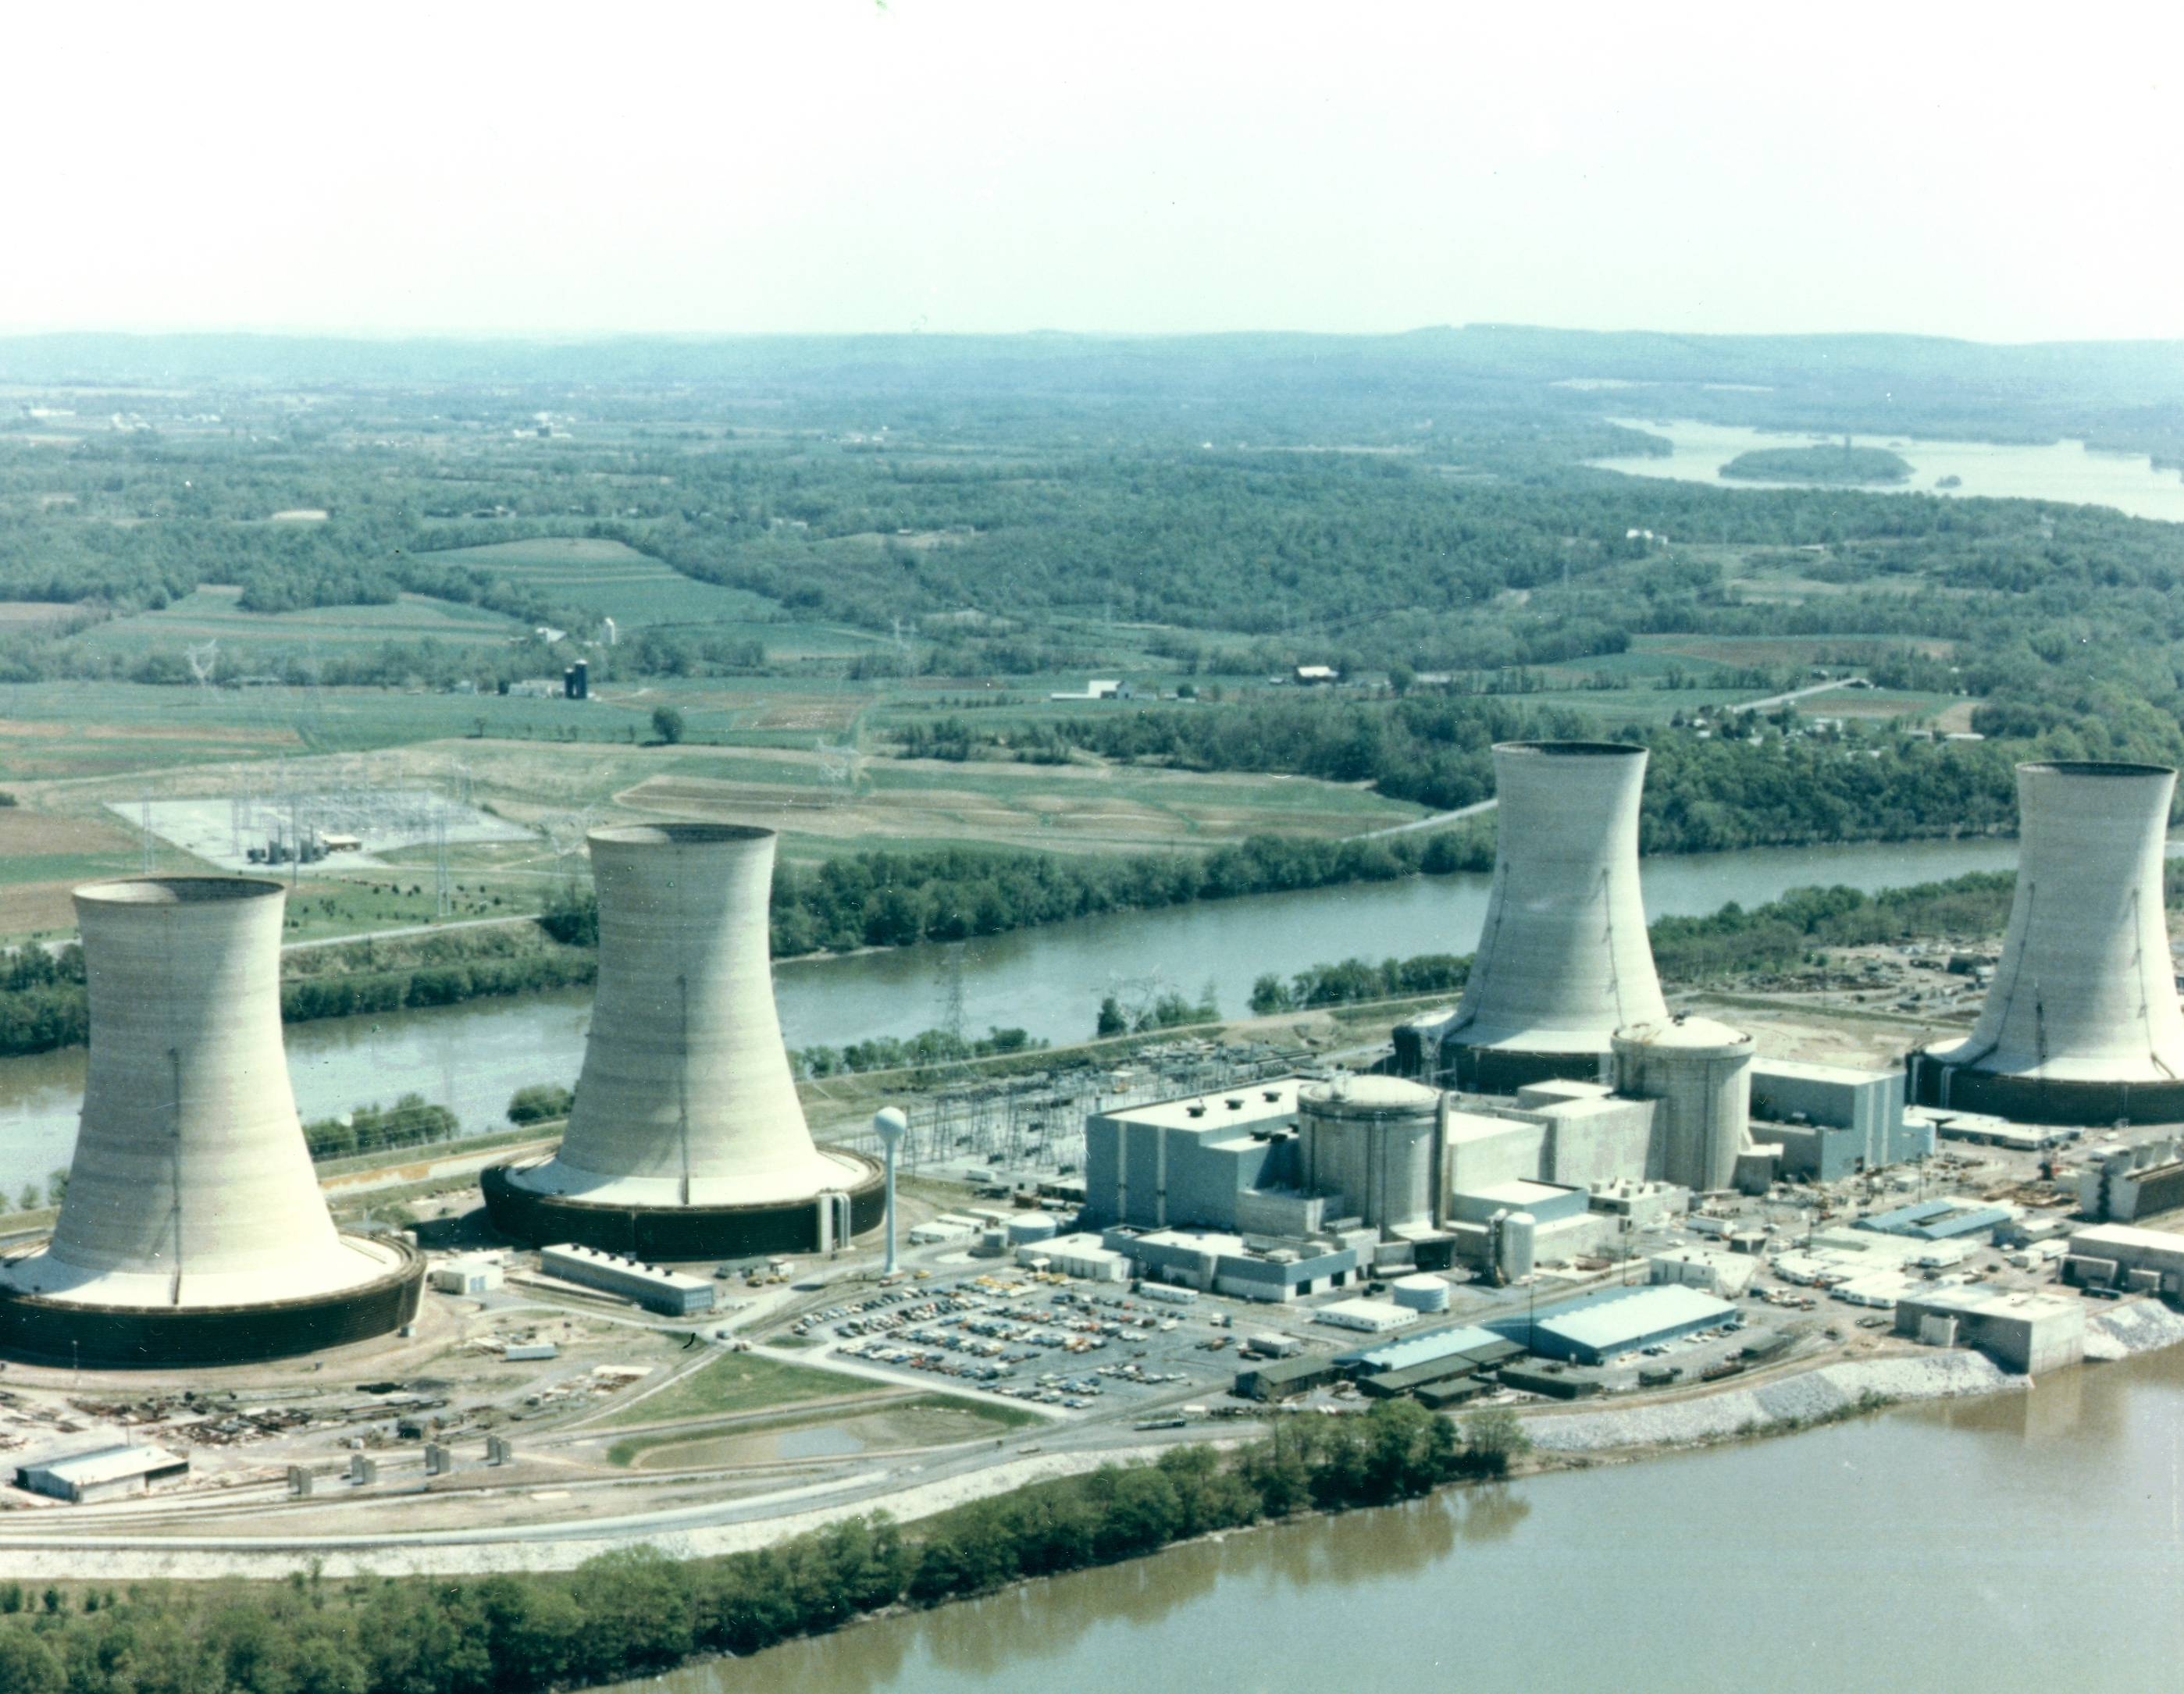 Close call: Three Mile Island Nuclear Generating Station near Harrisburg, Pennsylvania, where a cooling system failure led to the partial meltdown of a reactor in 1979. | NRC PHOTOS